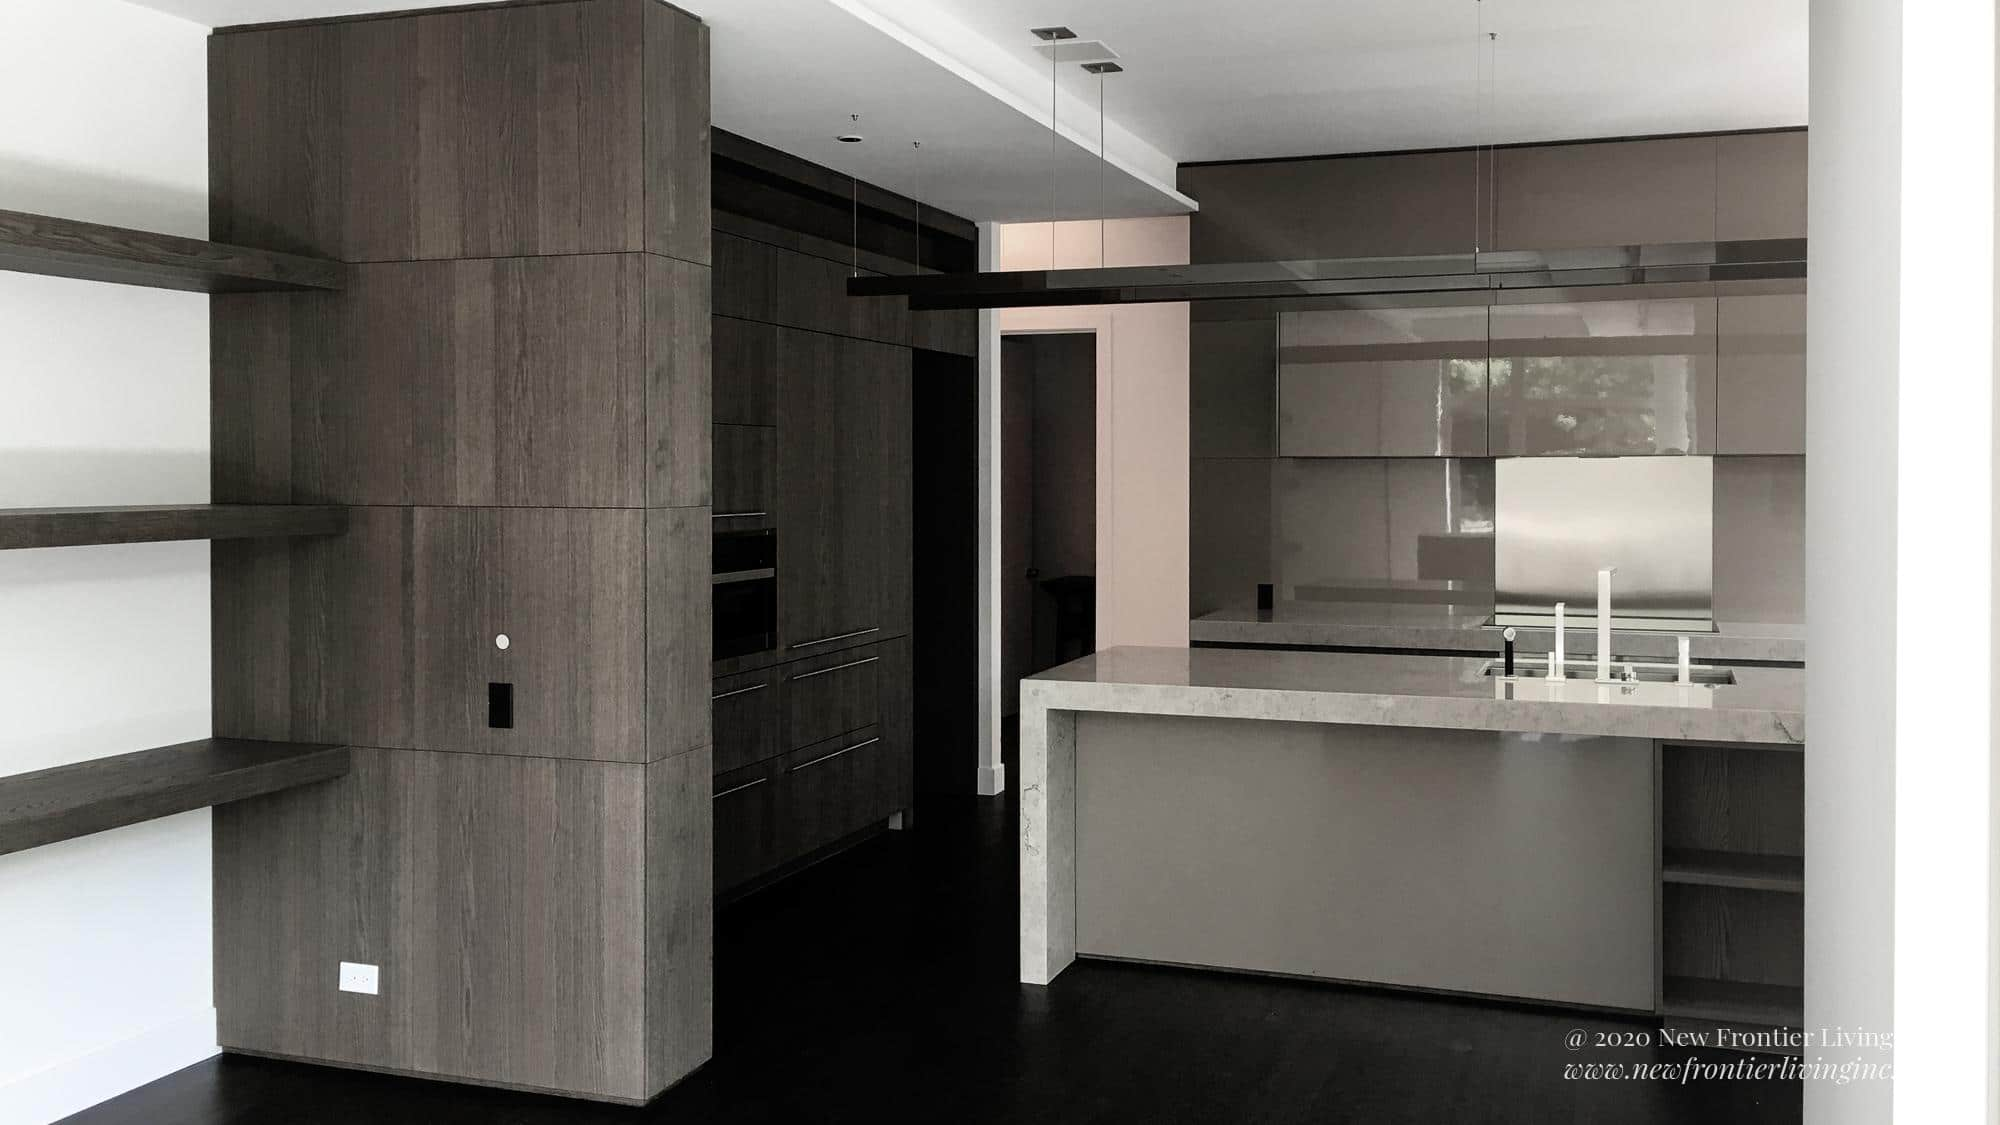 Gray and white waterfall kitchen island with modern sinks and wall cabinetry, side shelves on the wall to the left